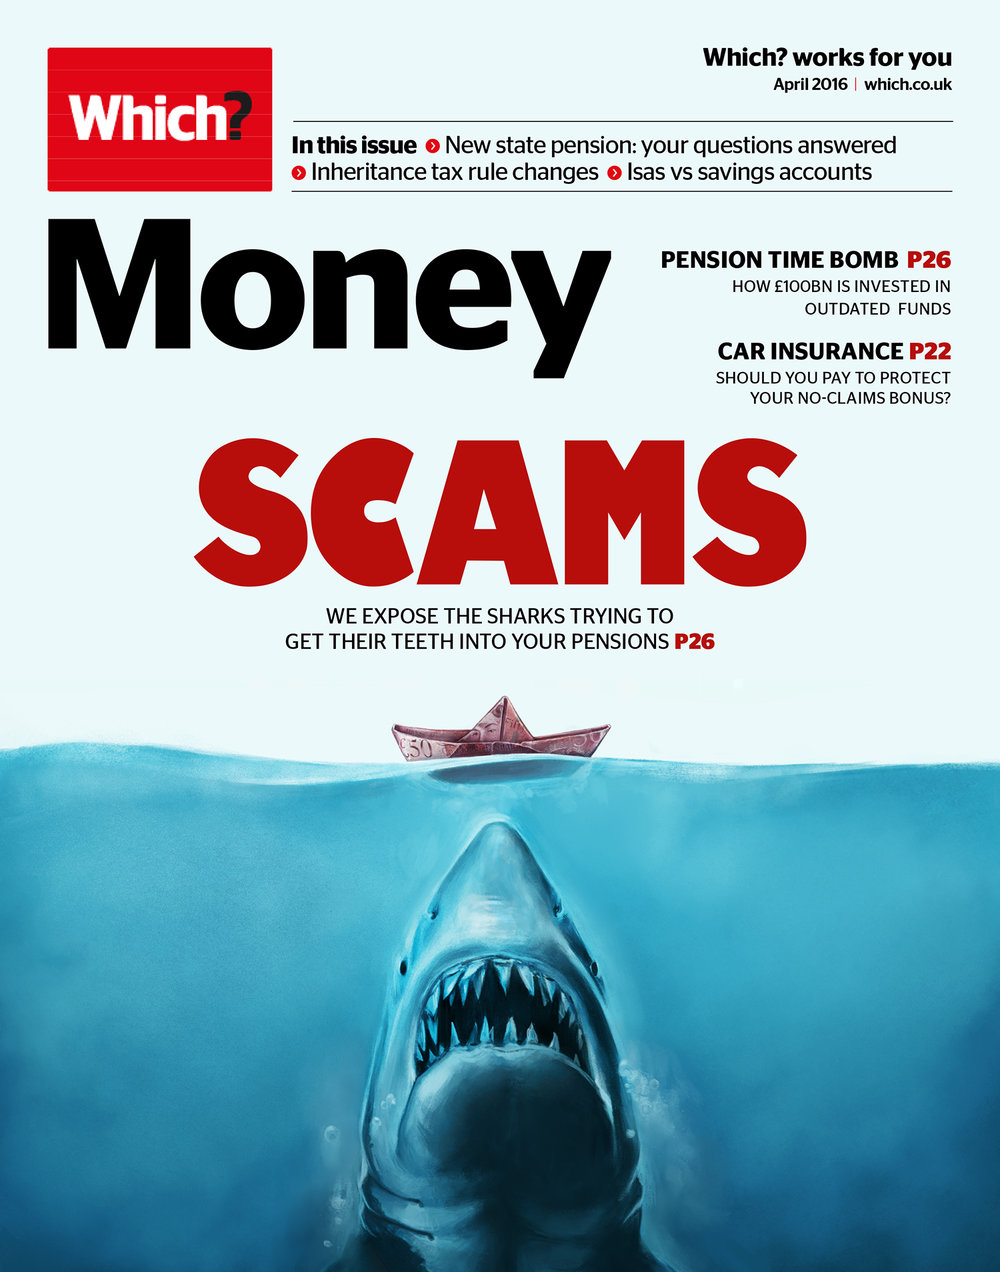 Which? Money - Scams